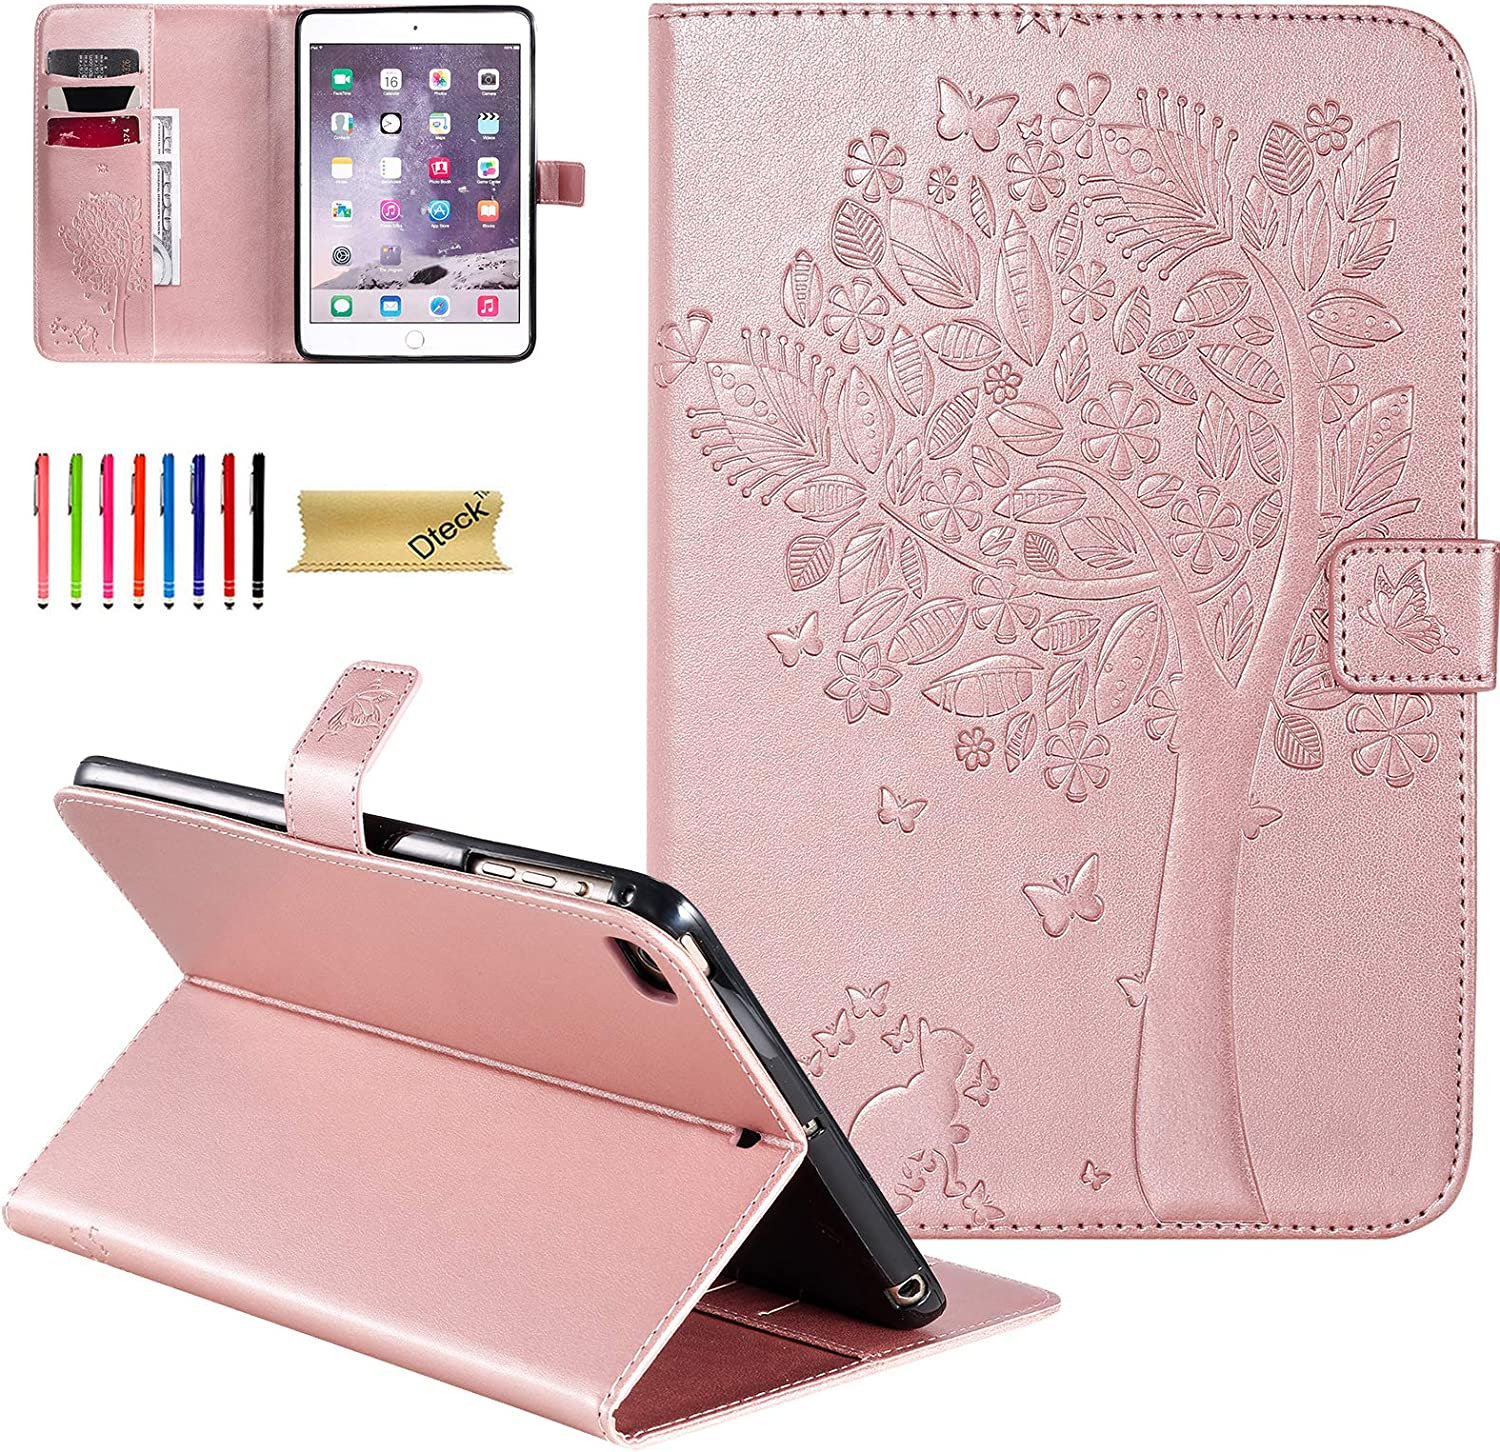 iPad Mini 5th Gen Case 2019, iPad Mini 4/3/2 Case, Dteck Embossed Cat Tree PU Leather Folio Stand Case with Auto Wake/Sleep Smart Magnetic Cover for Apple iPad Mini 5/Mini 4/Mini 3 /Mini2, Rosegold